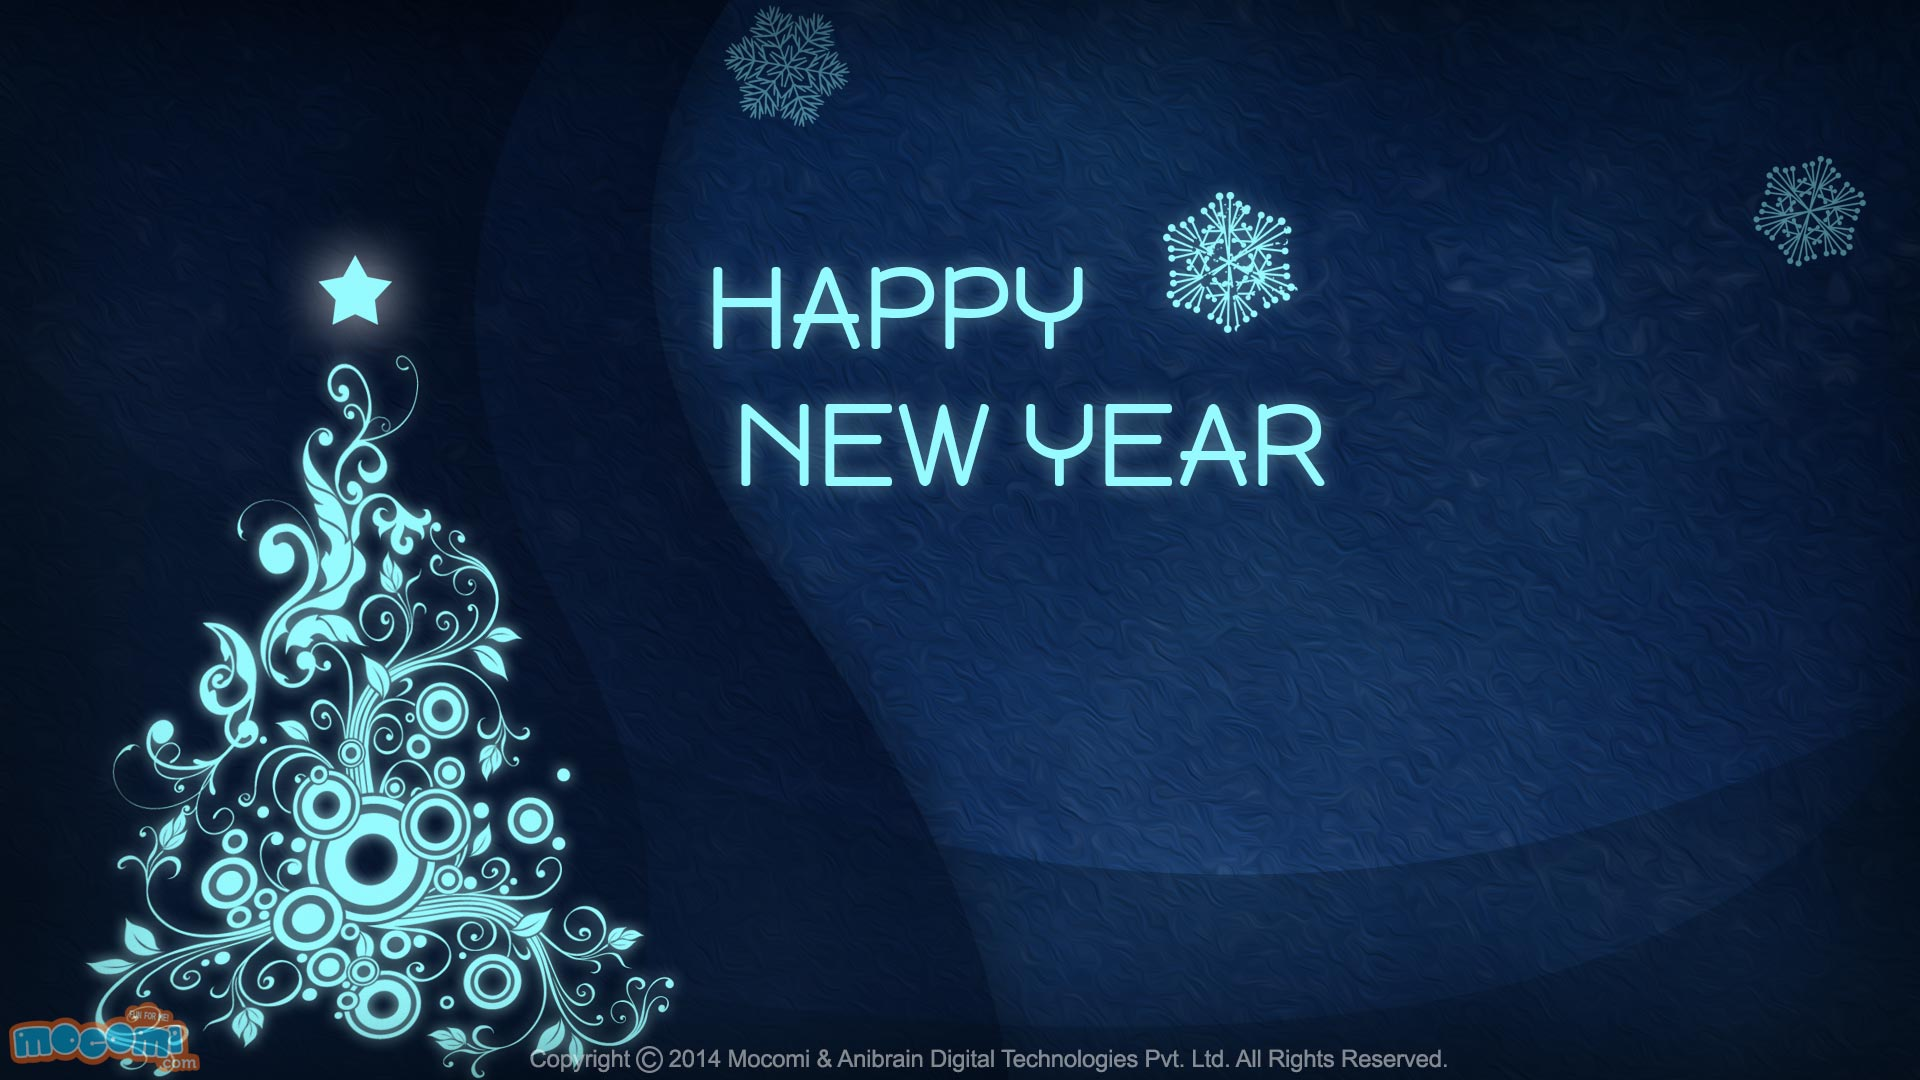 Happy New Year Wallpaper- - Happy New Year 2019 Unique , HD Wallpaper & Backgrounds